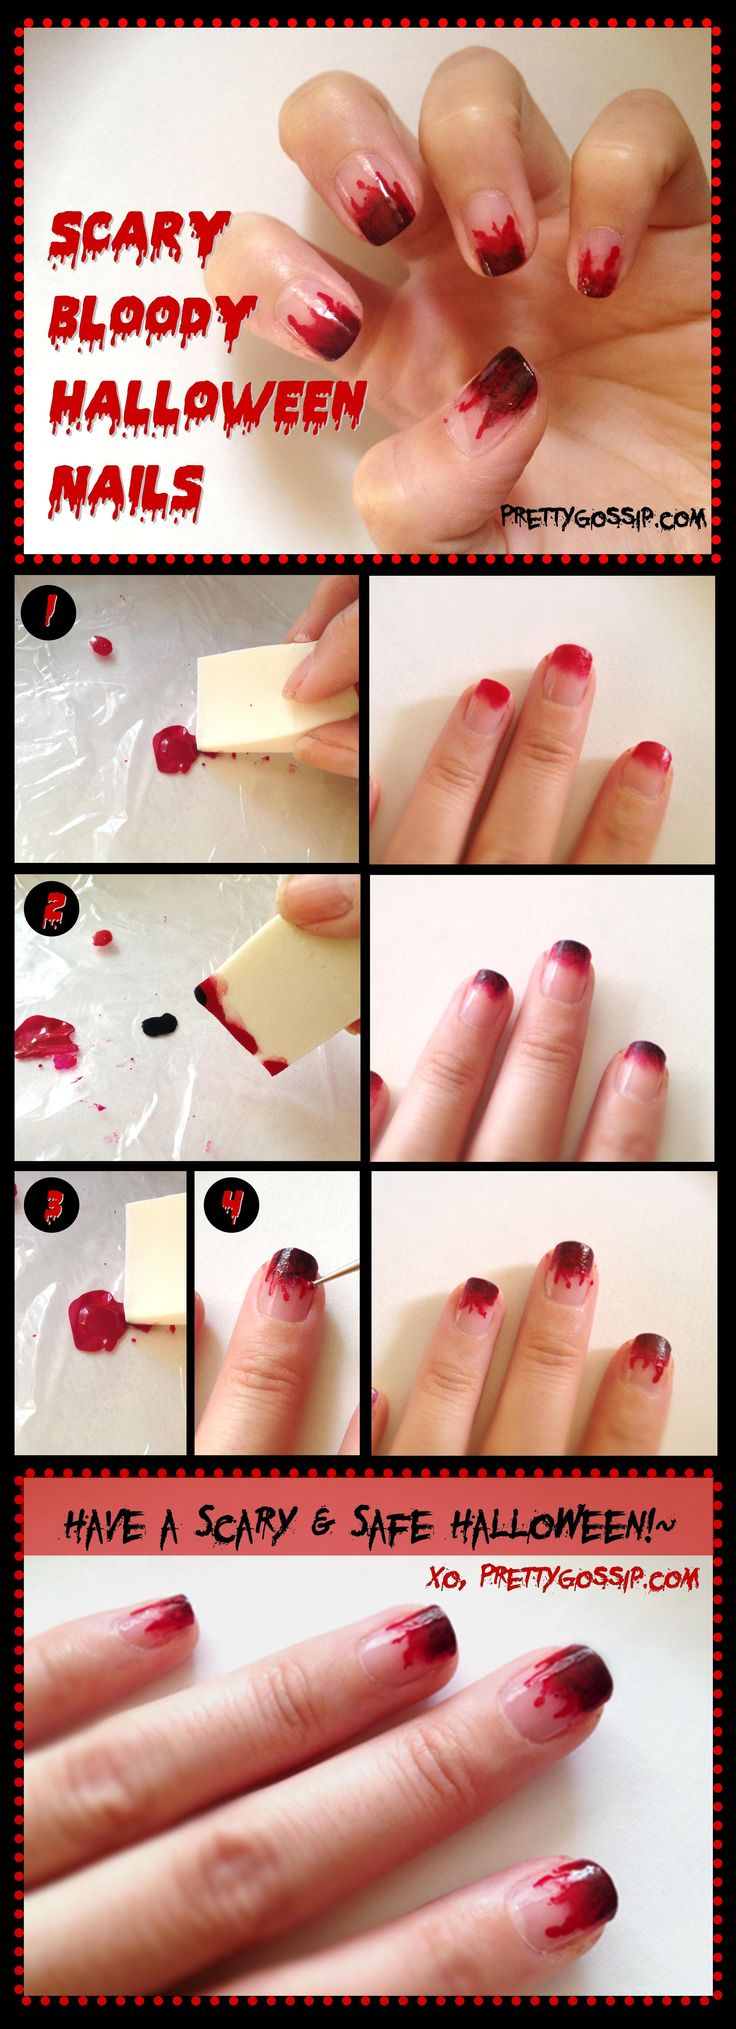 DIY Halloween Nails : DIY Scary & Bloody Halloween Nail